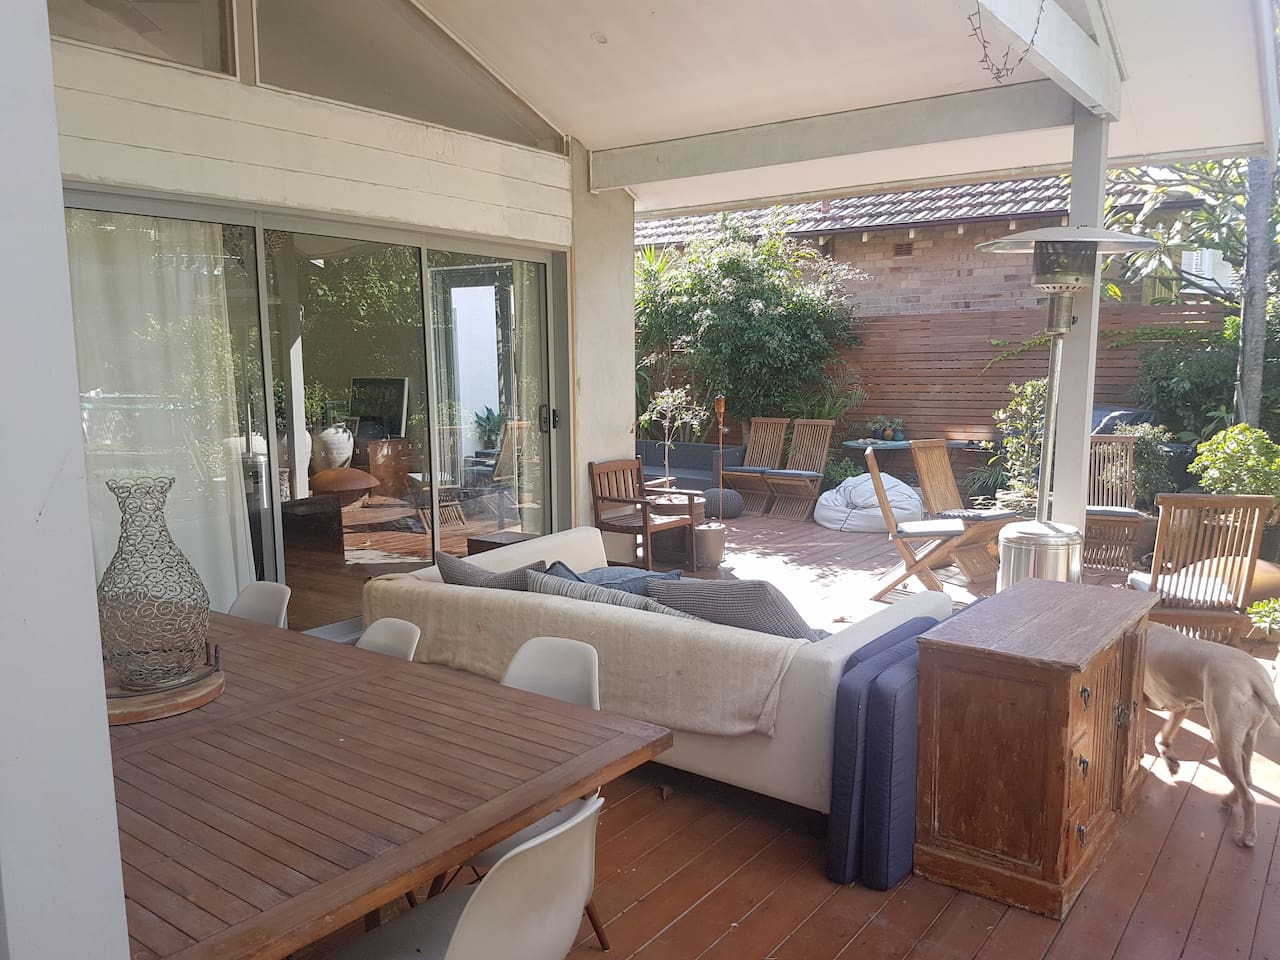 Rear Deck with dining and lounge areas.